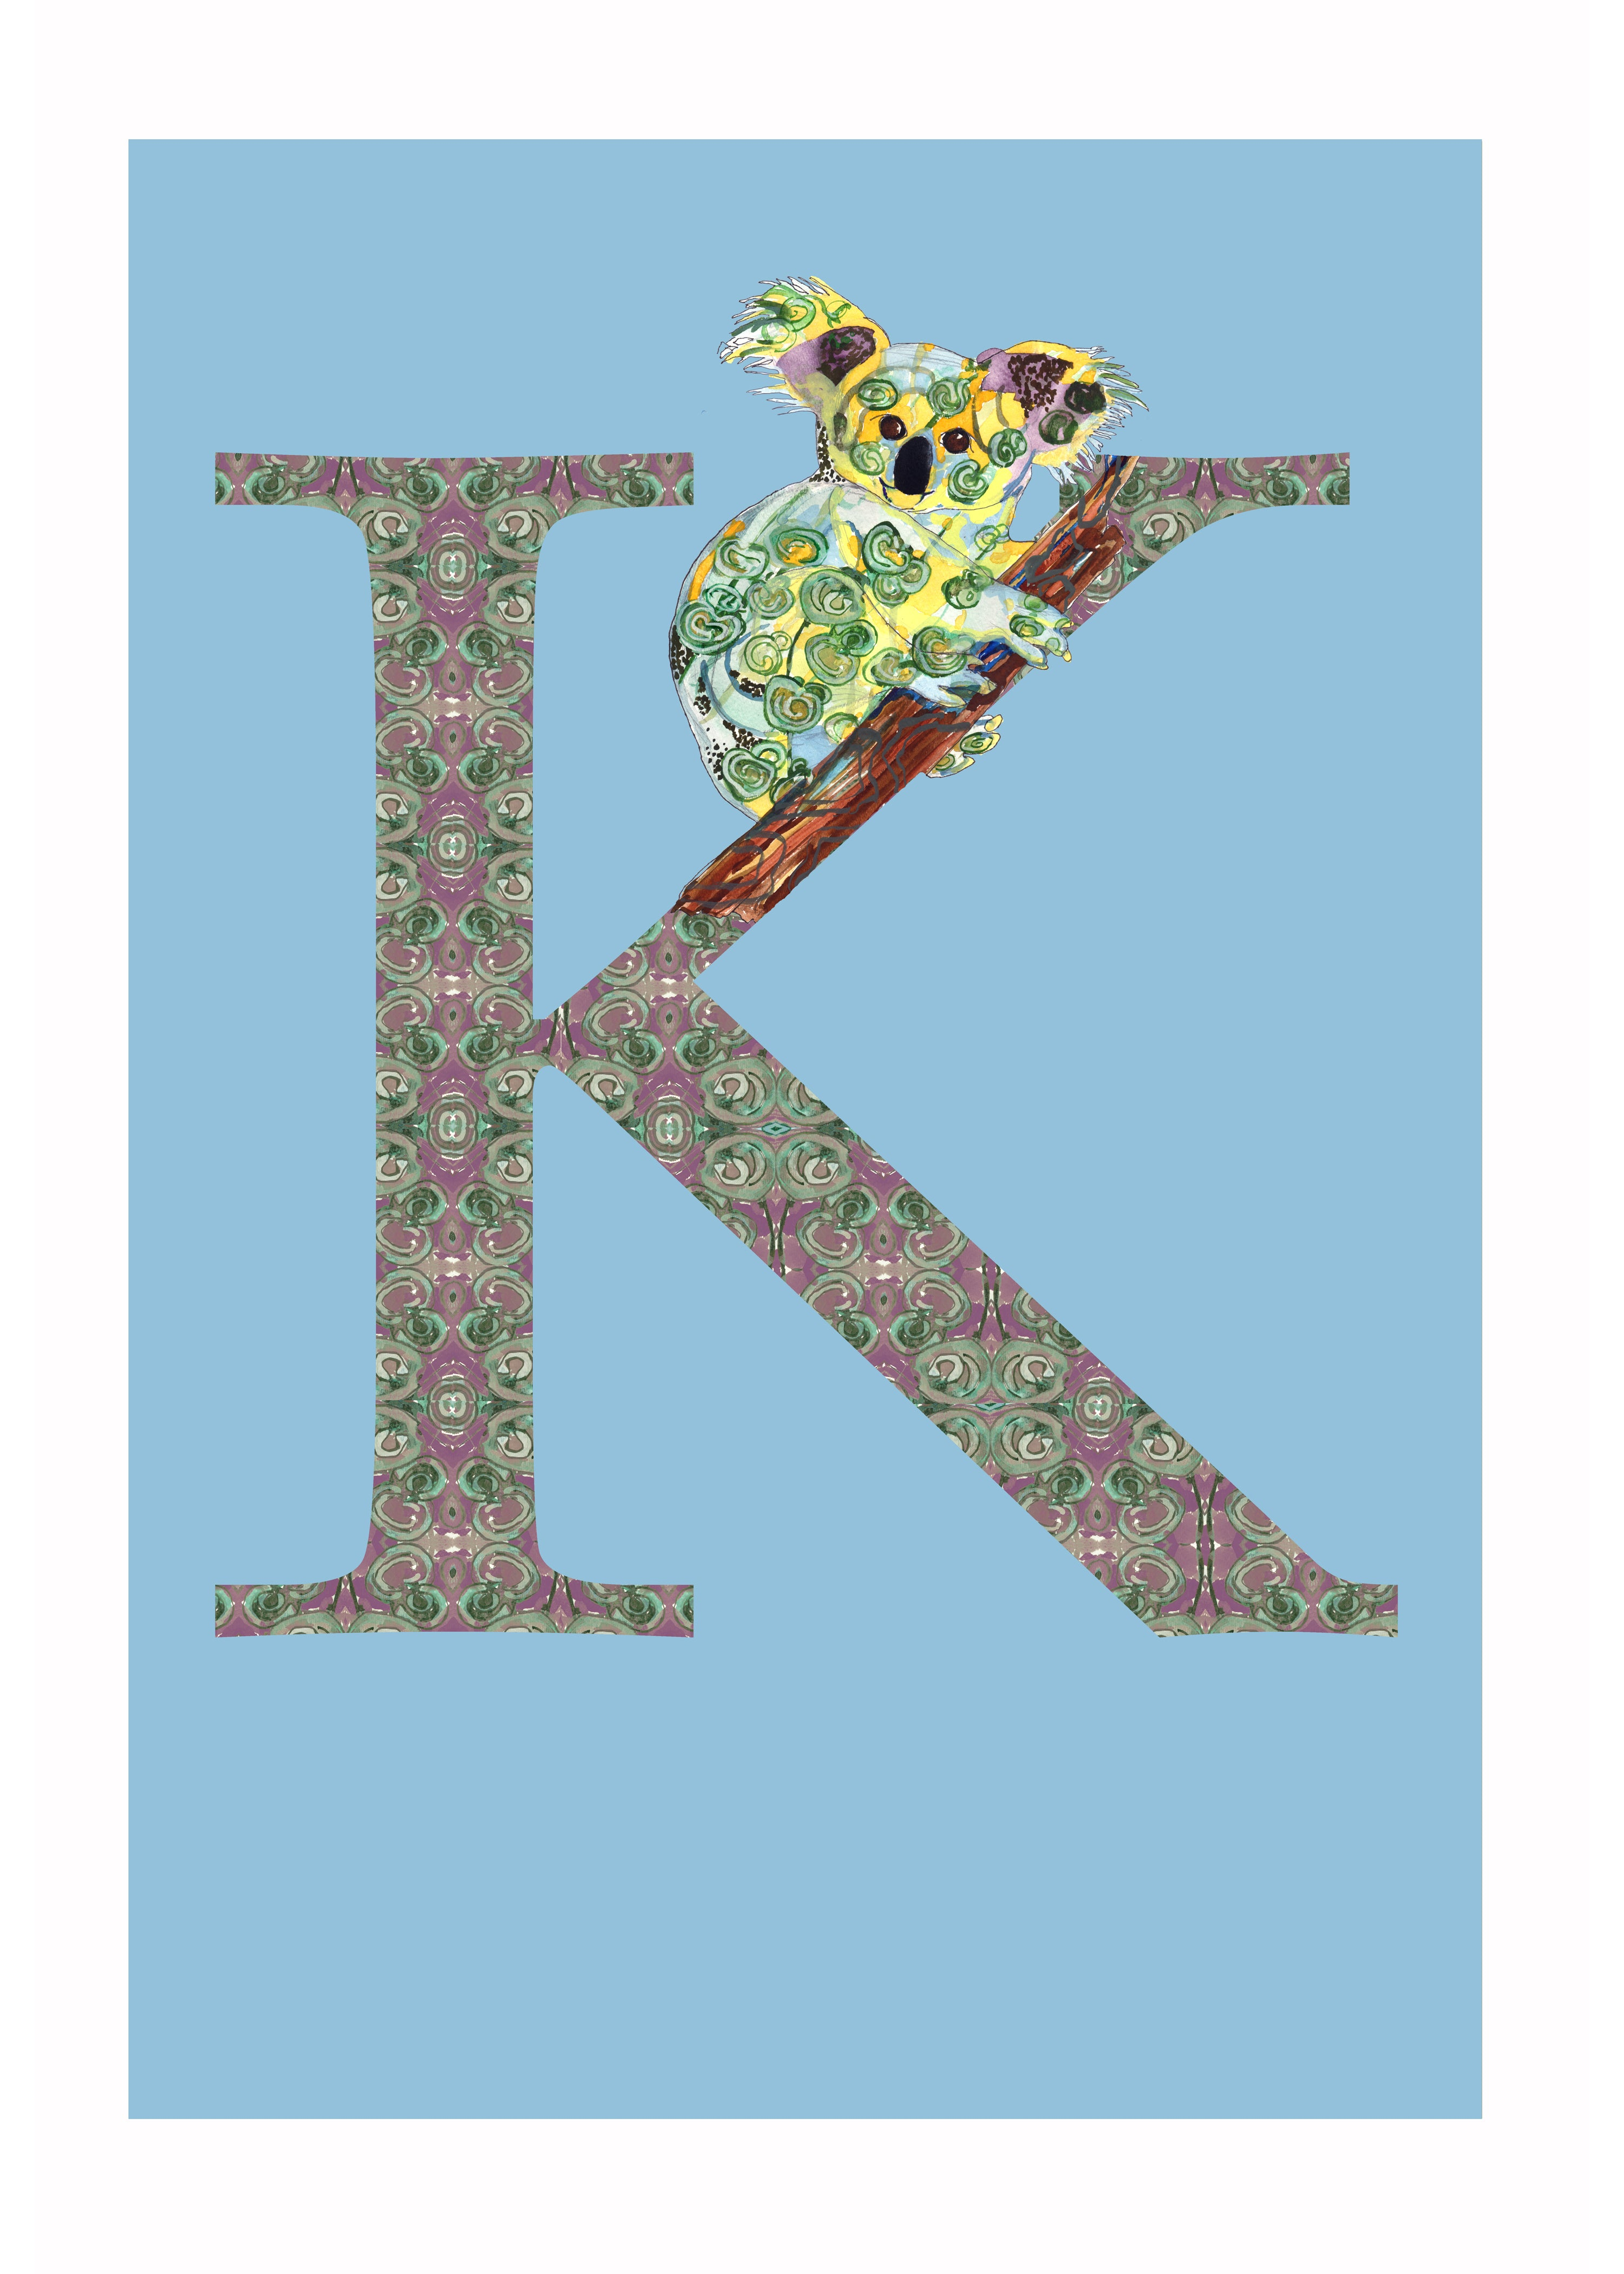 K - Koala Alphabet Animal Art Print